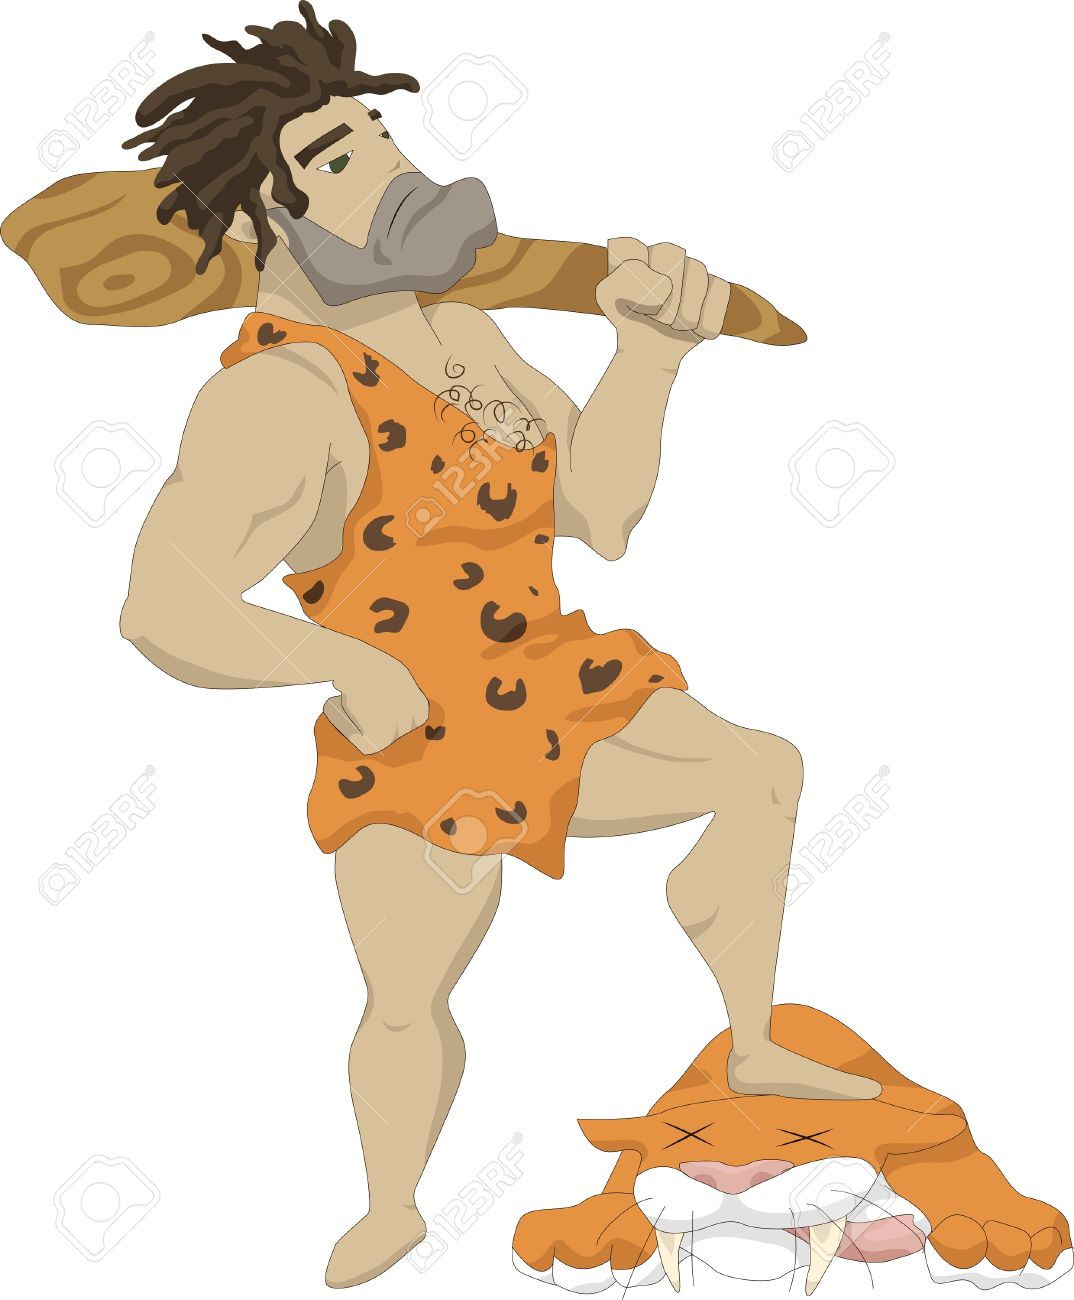 Illustration Of A Caveman With A Club In His Hands, At His Feet.